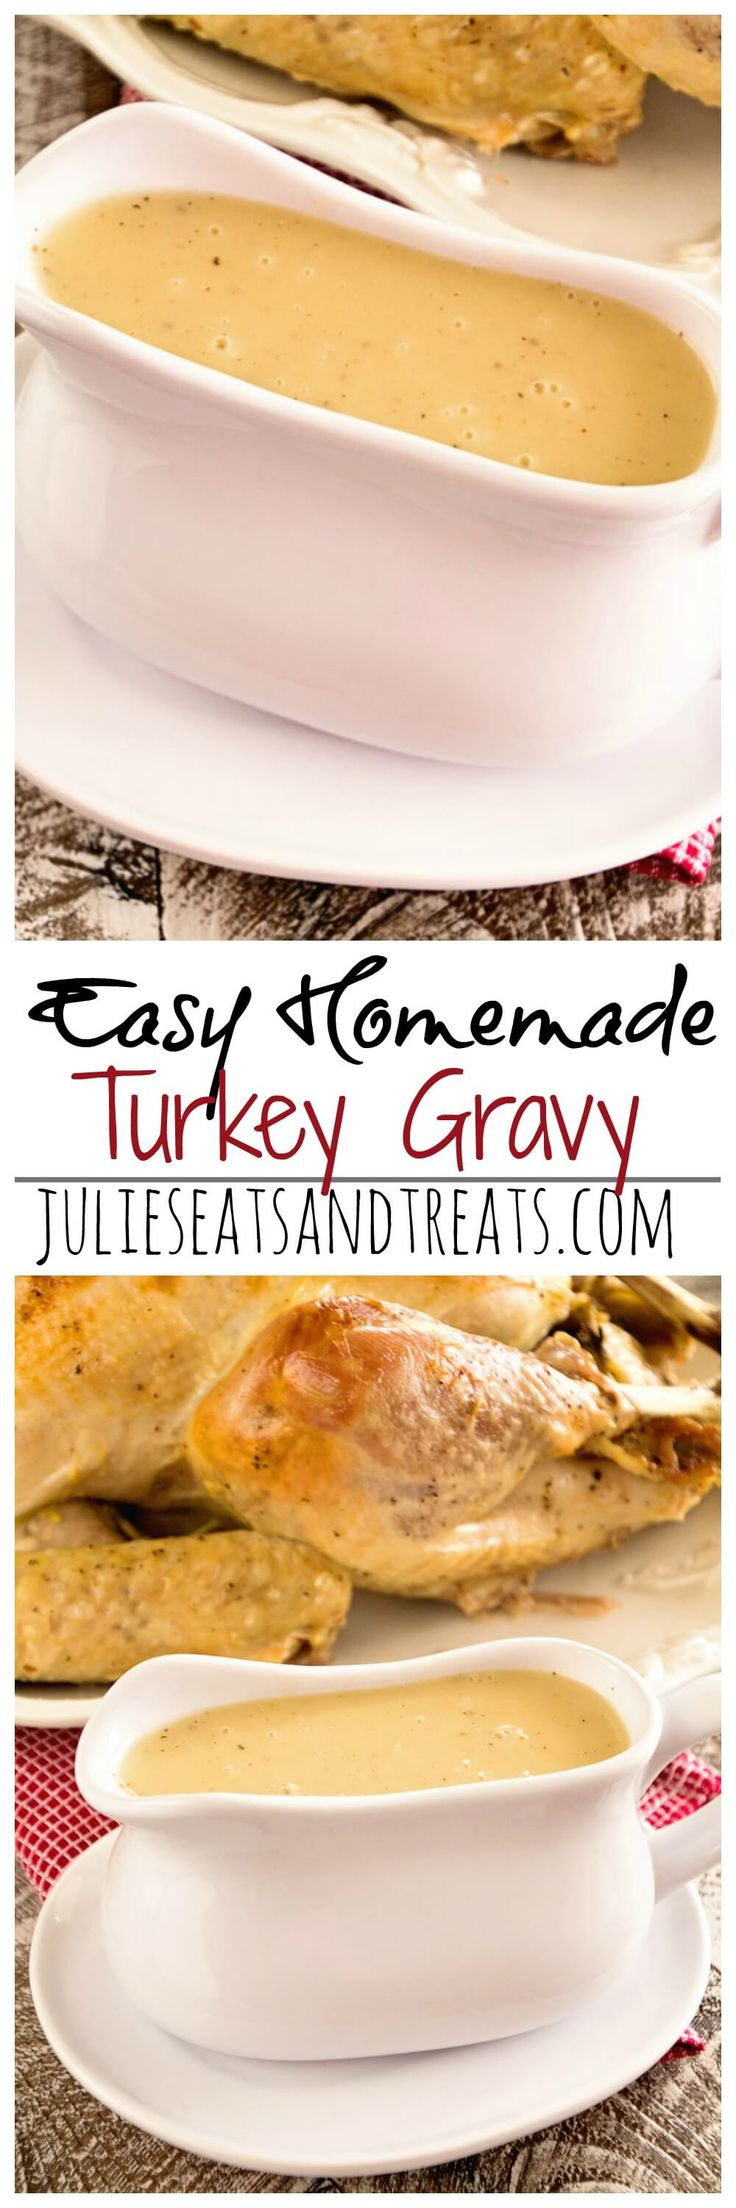 Easy Homemade Gravy Recipe ~ Delicious Homemade Turkey Gravy that Anyone Can Make!